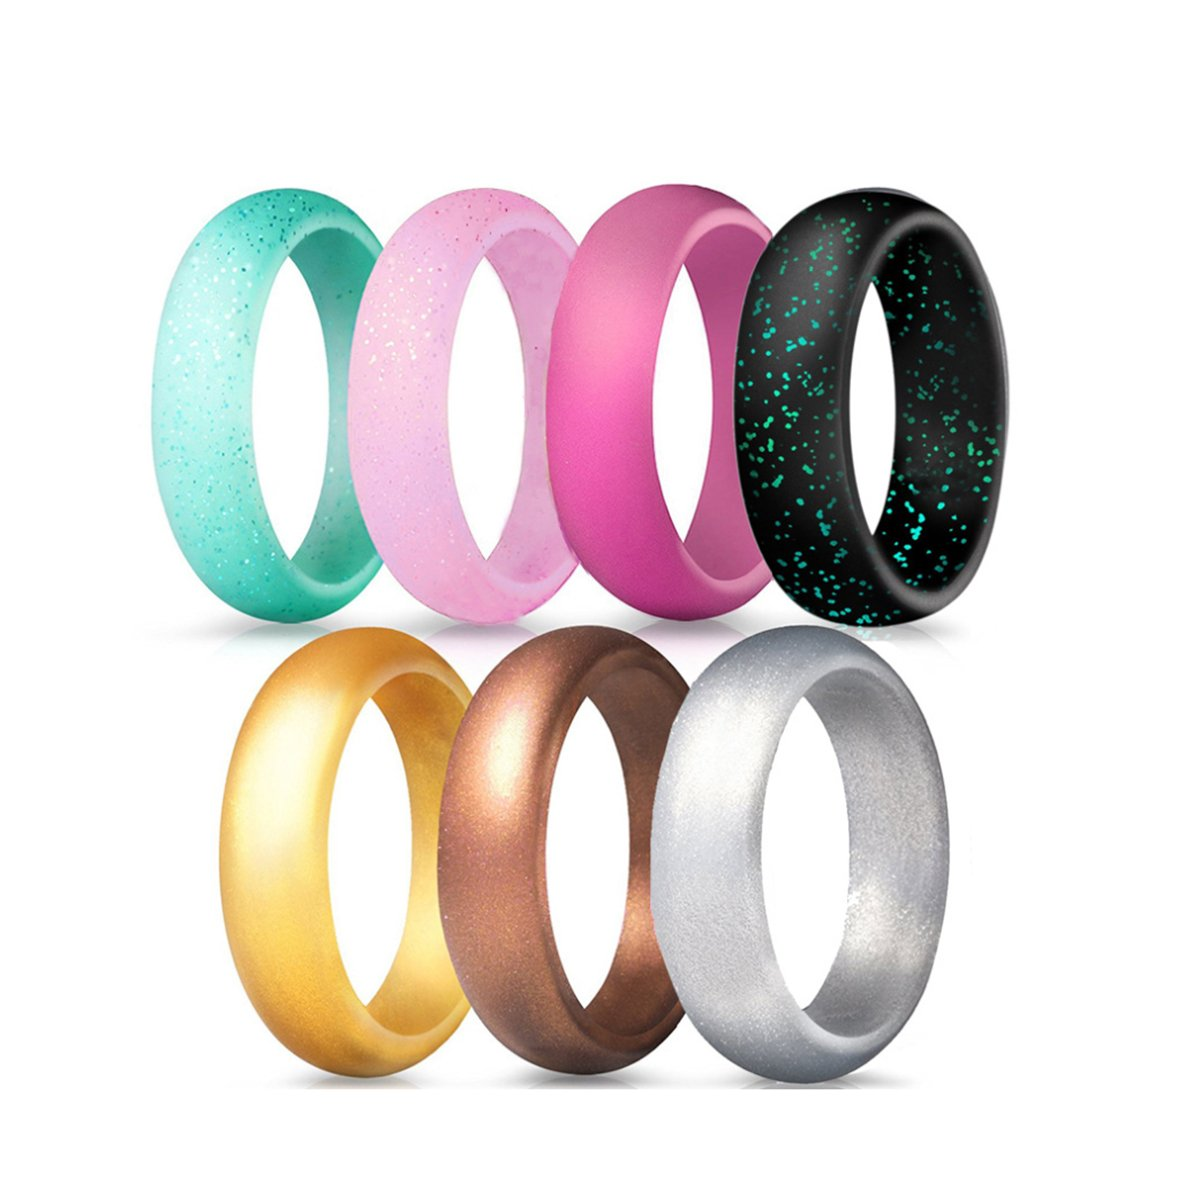 Silicone Wedding Ring for Women Men Silicone Rubber Wedding Bands 5.7mm Width 7 Pack (10)